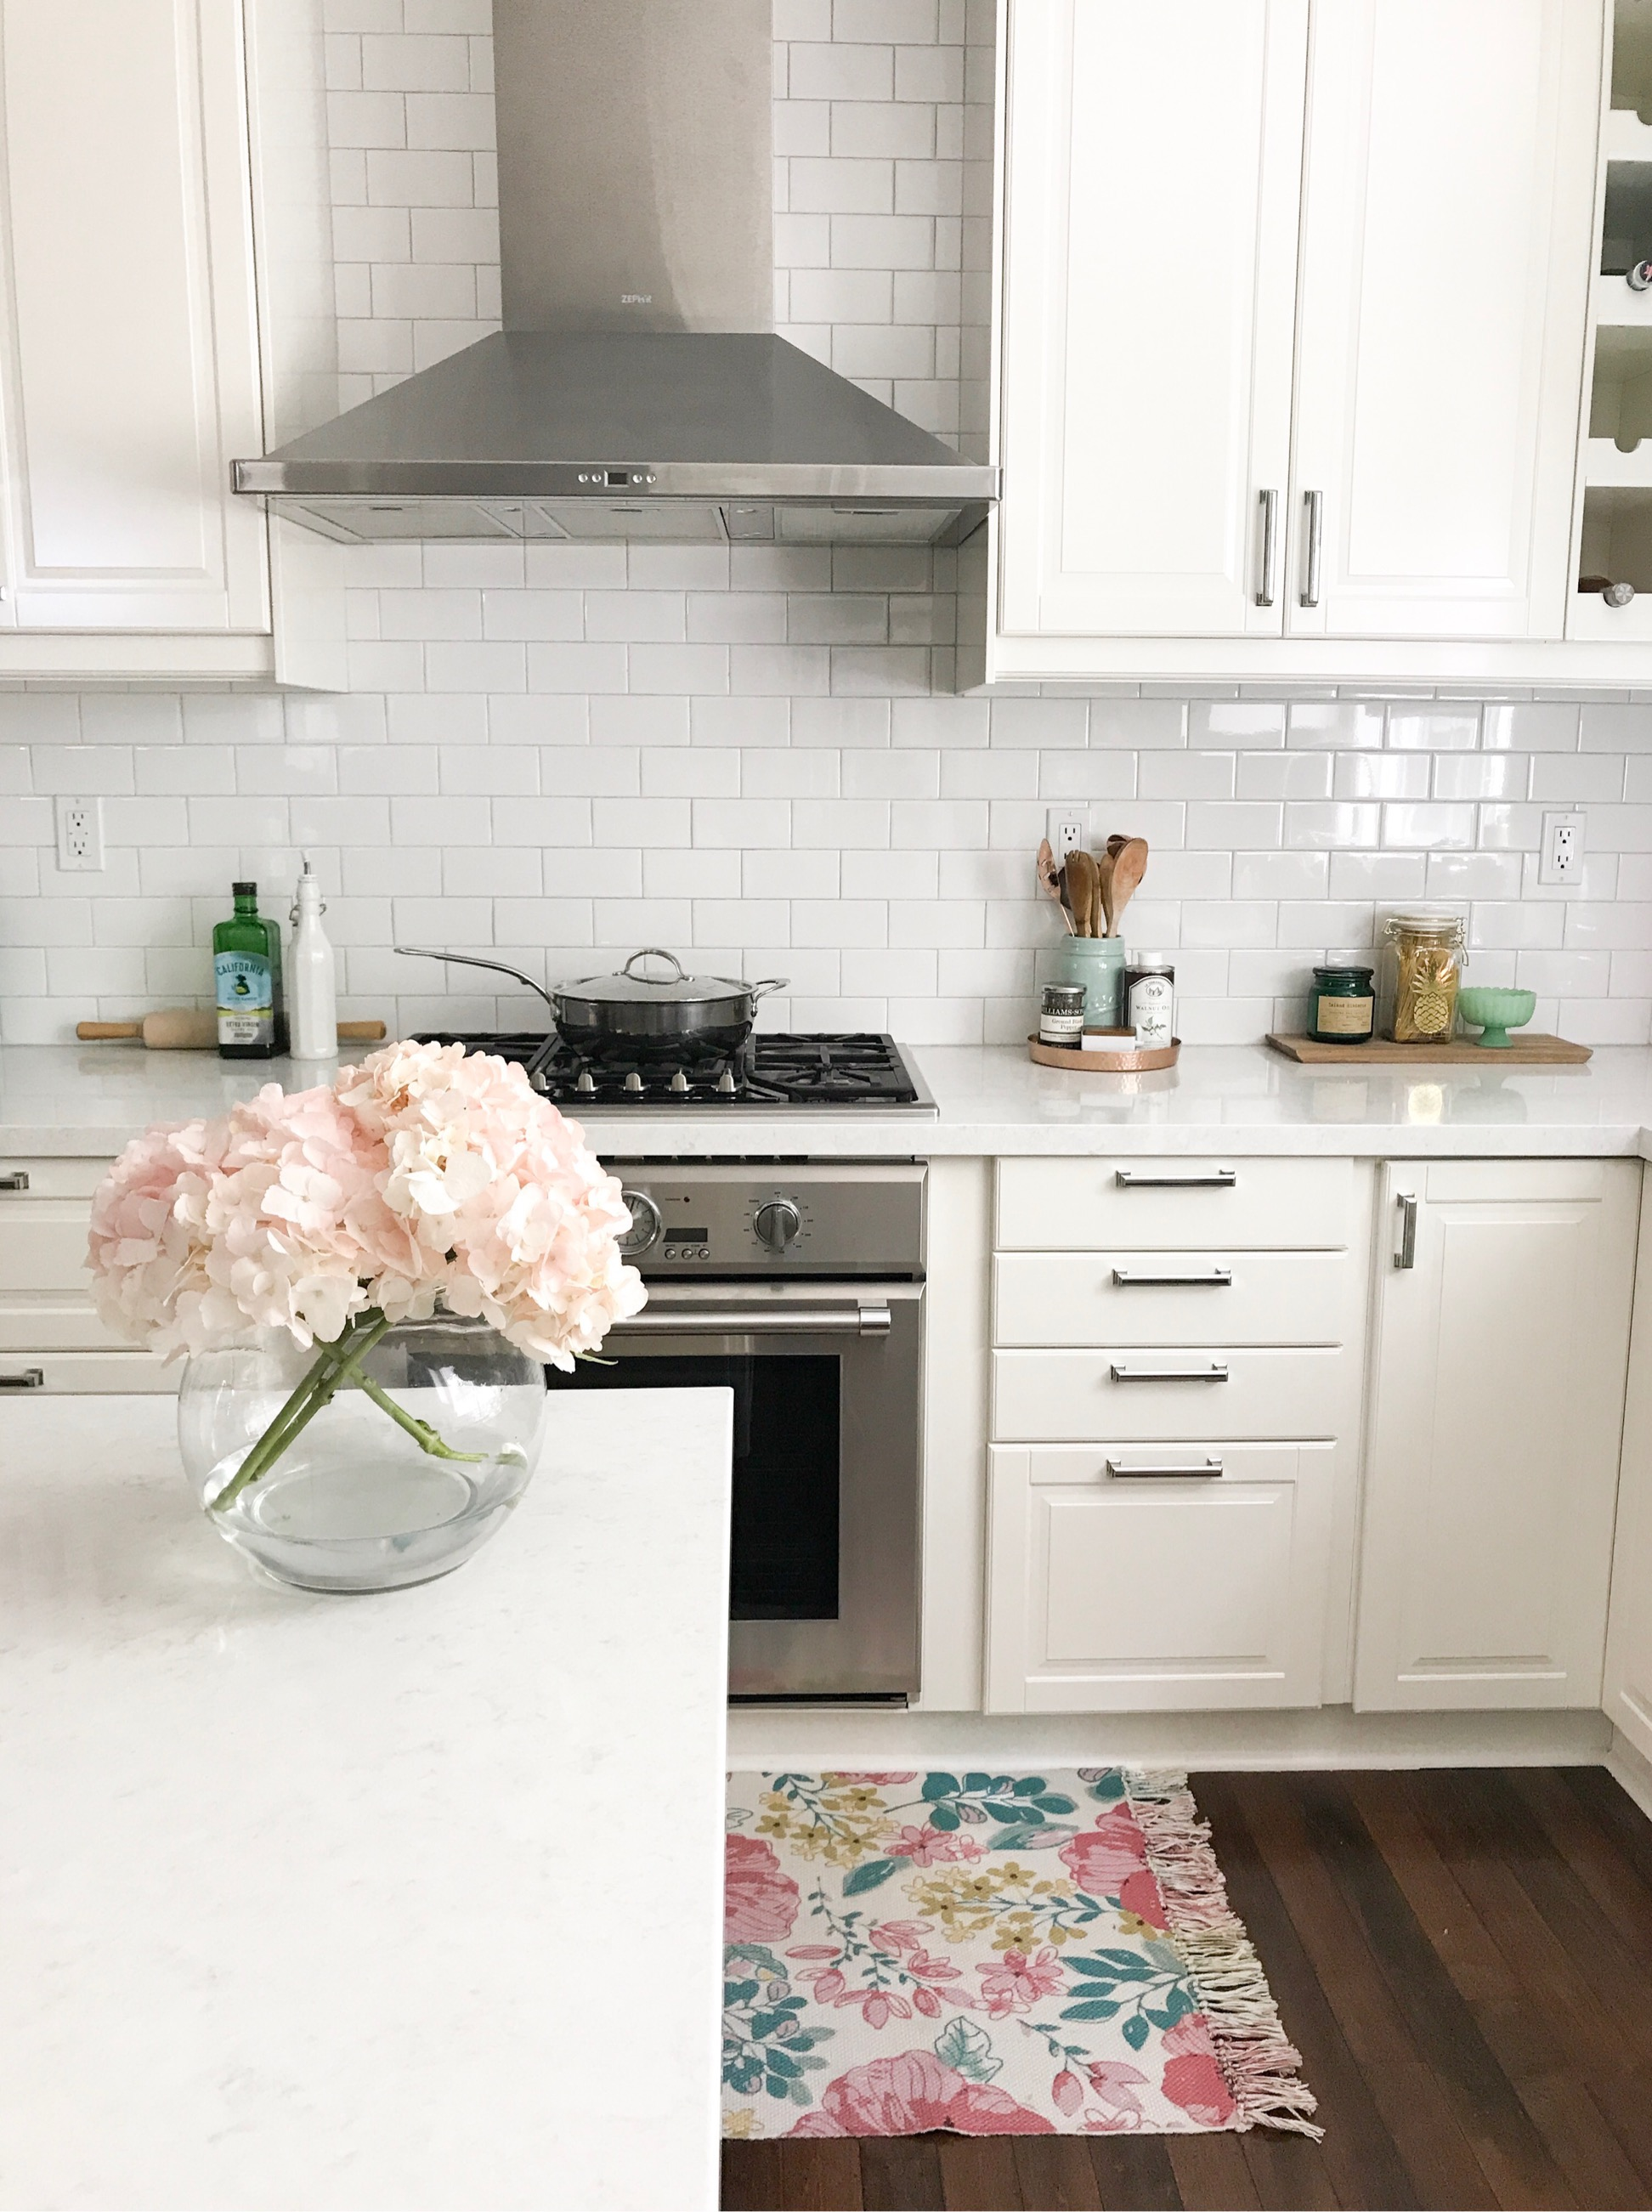 Nice Luckily, When I Searched The Internet For IKEA Kitchen Design Inspiration I  Stumbled Upon One Of My Favorite Real Life IKEA Kitchenu0027s From Blogger Dana  ...